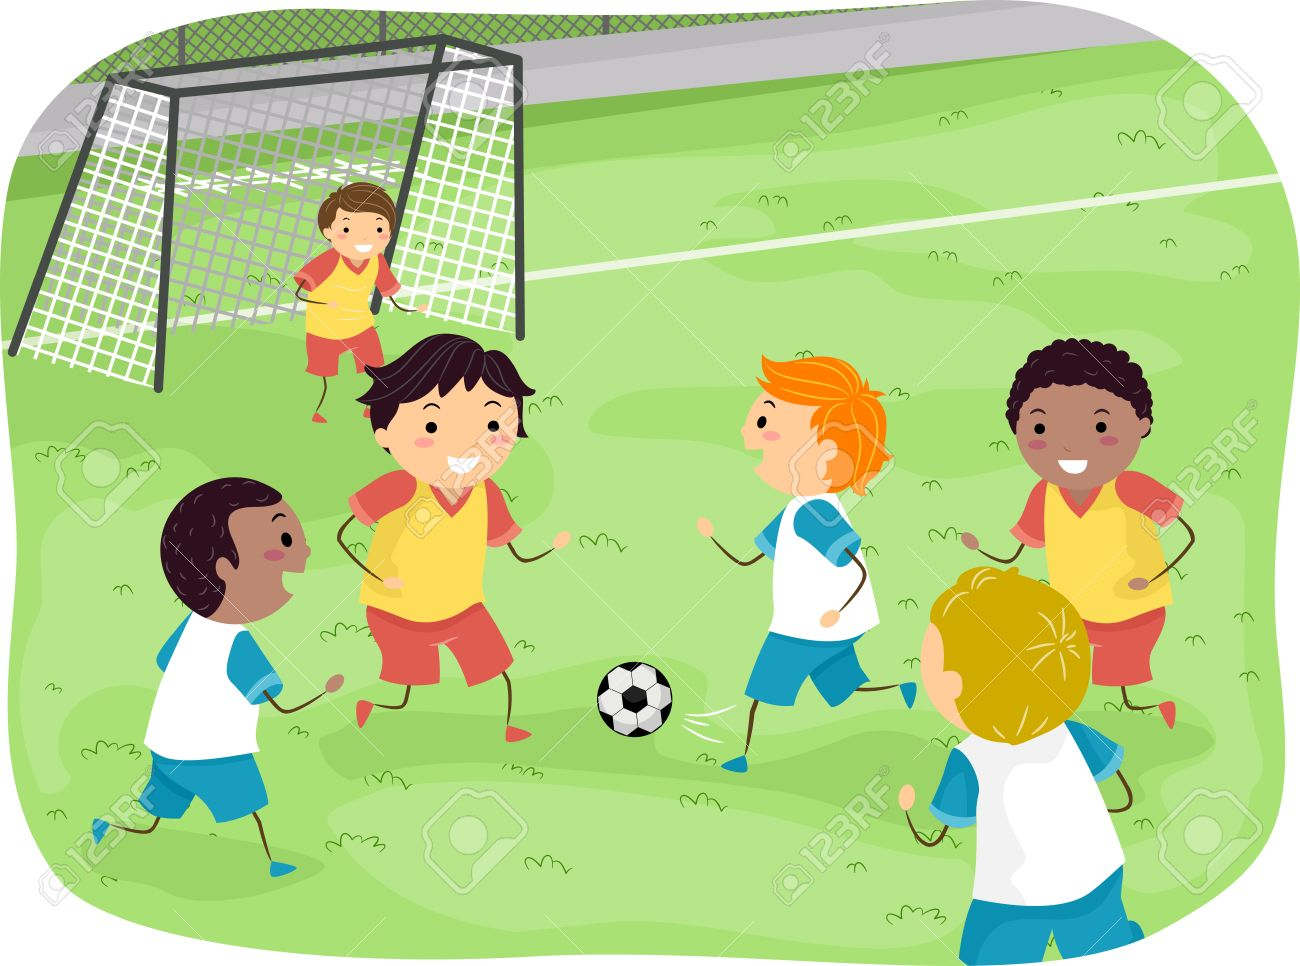 Illustration Featuring a Group of Boys Playing Soccer.